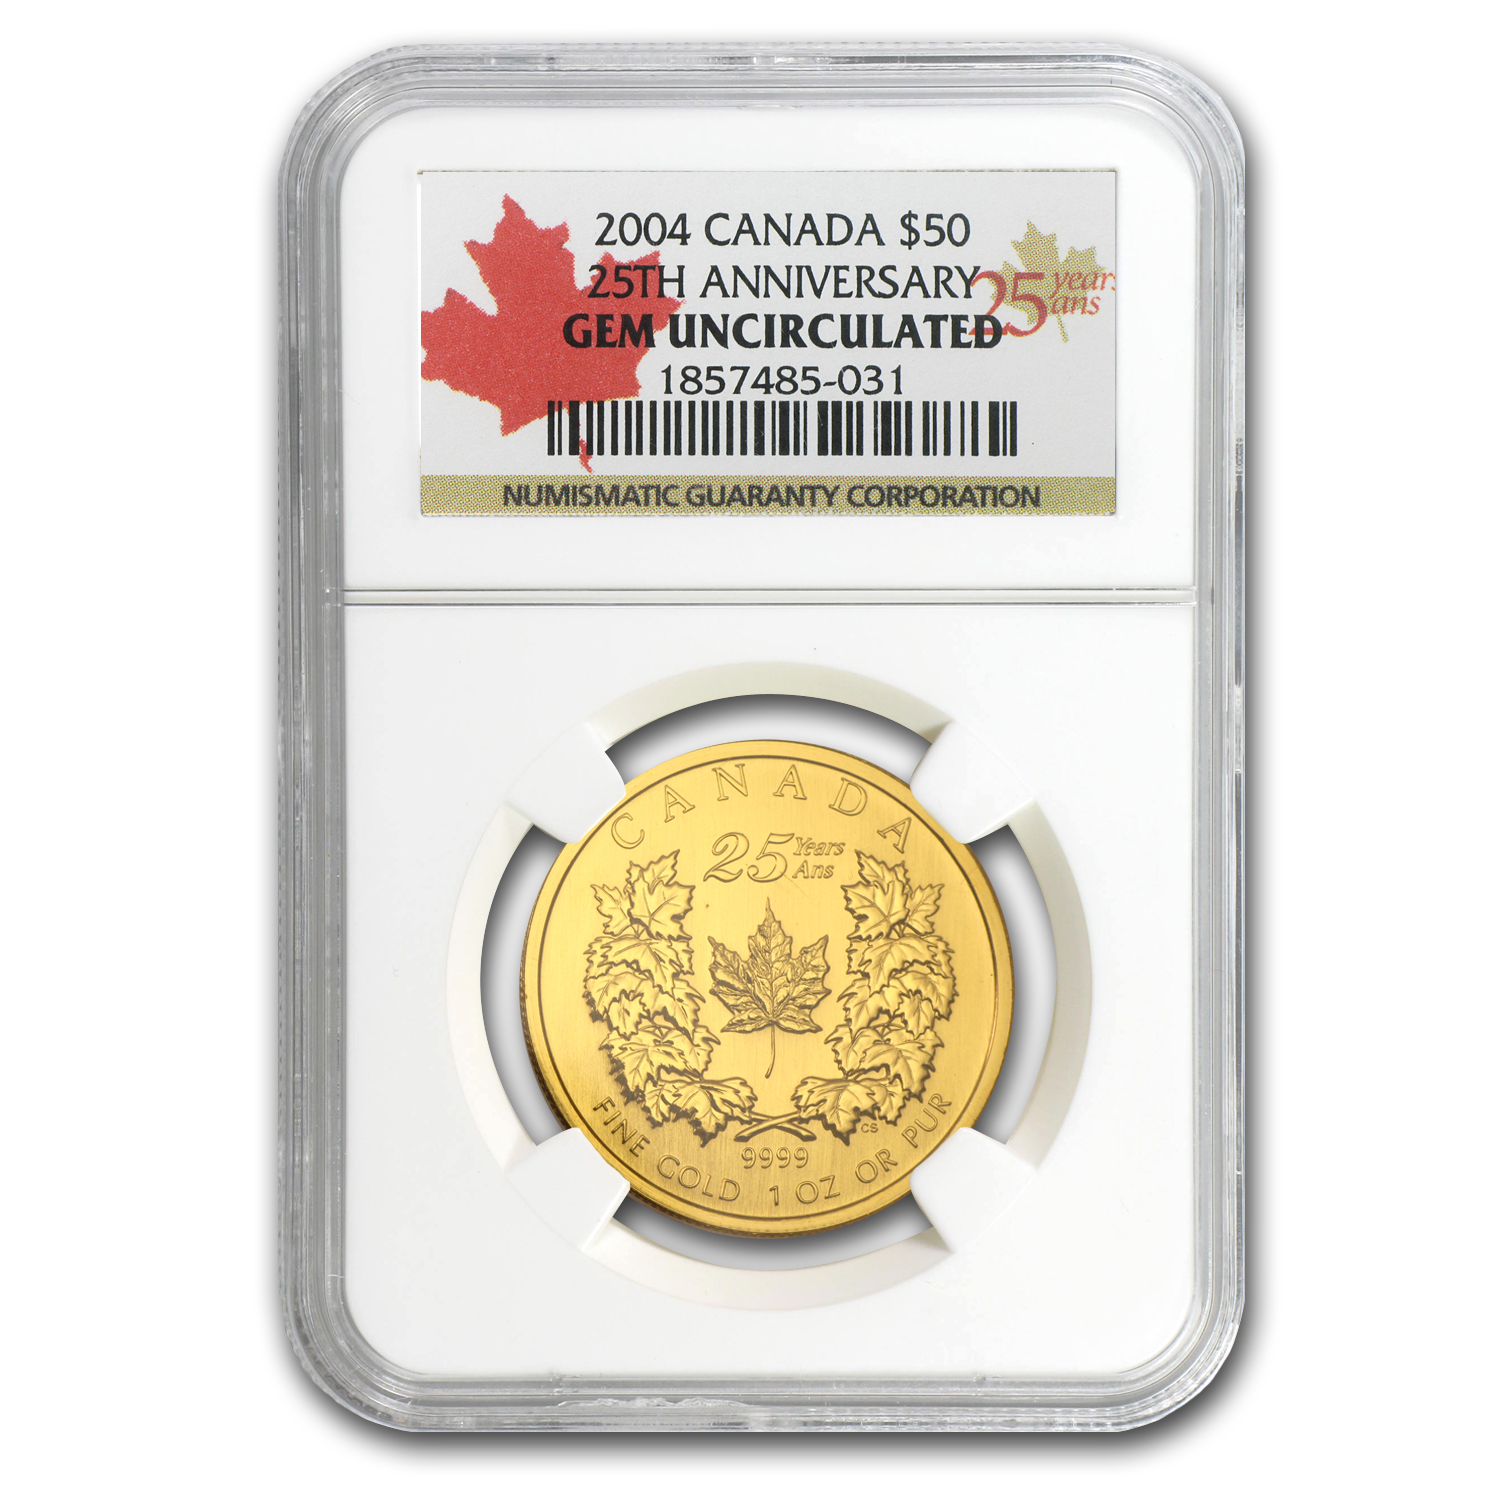 2004 Canada 1 oz Gold Maple Leaf Gem Unc NGC (25th Anniv)